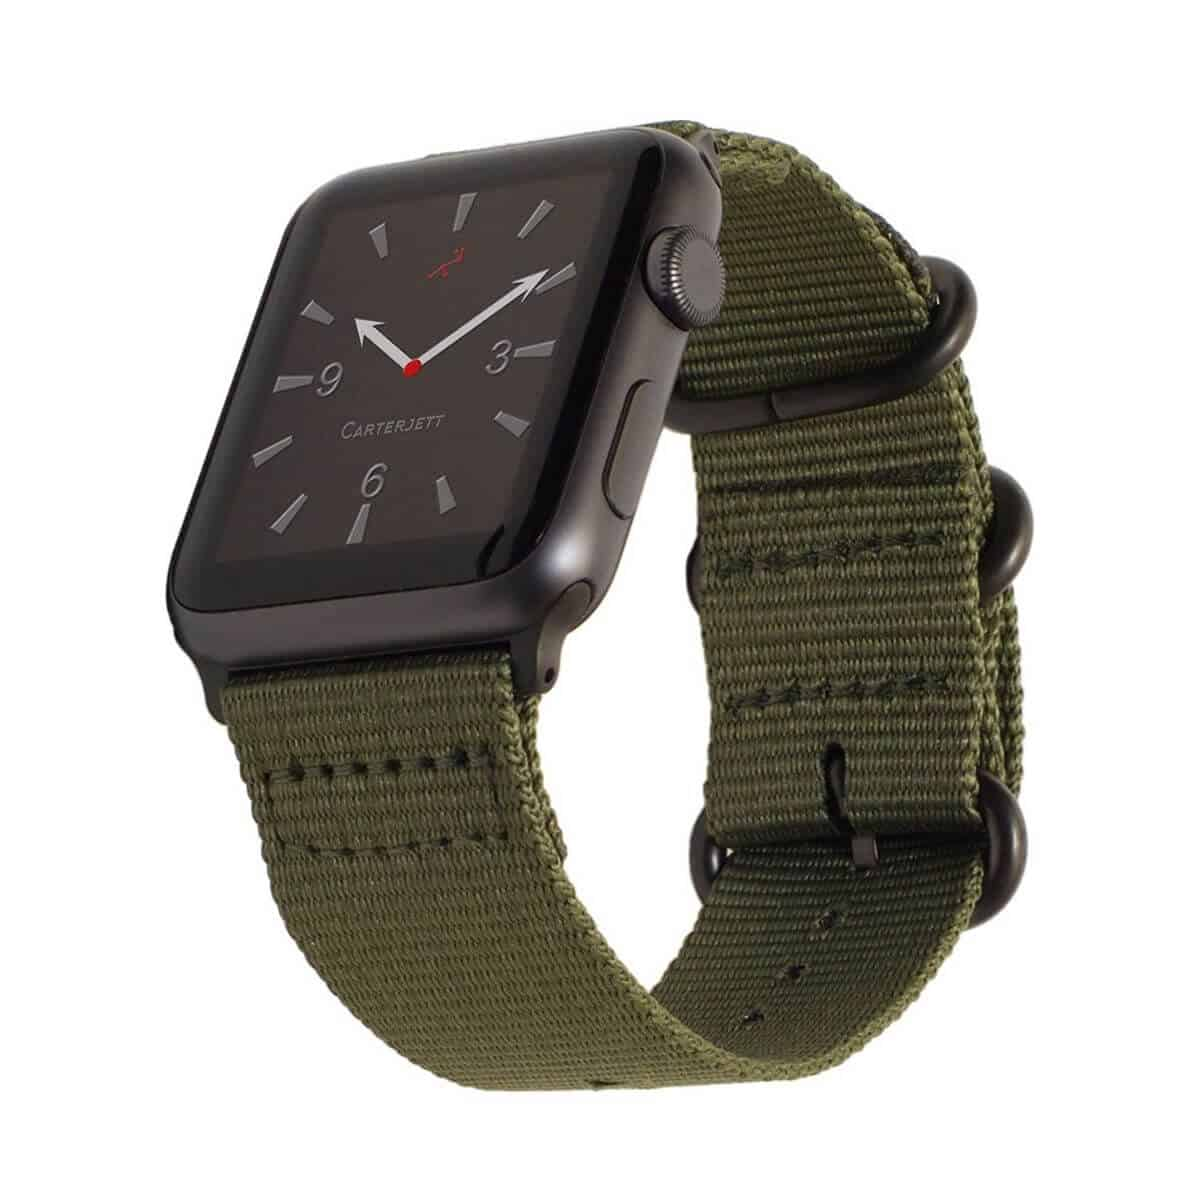 Apple Watch with an olive green nylon band.